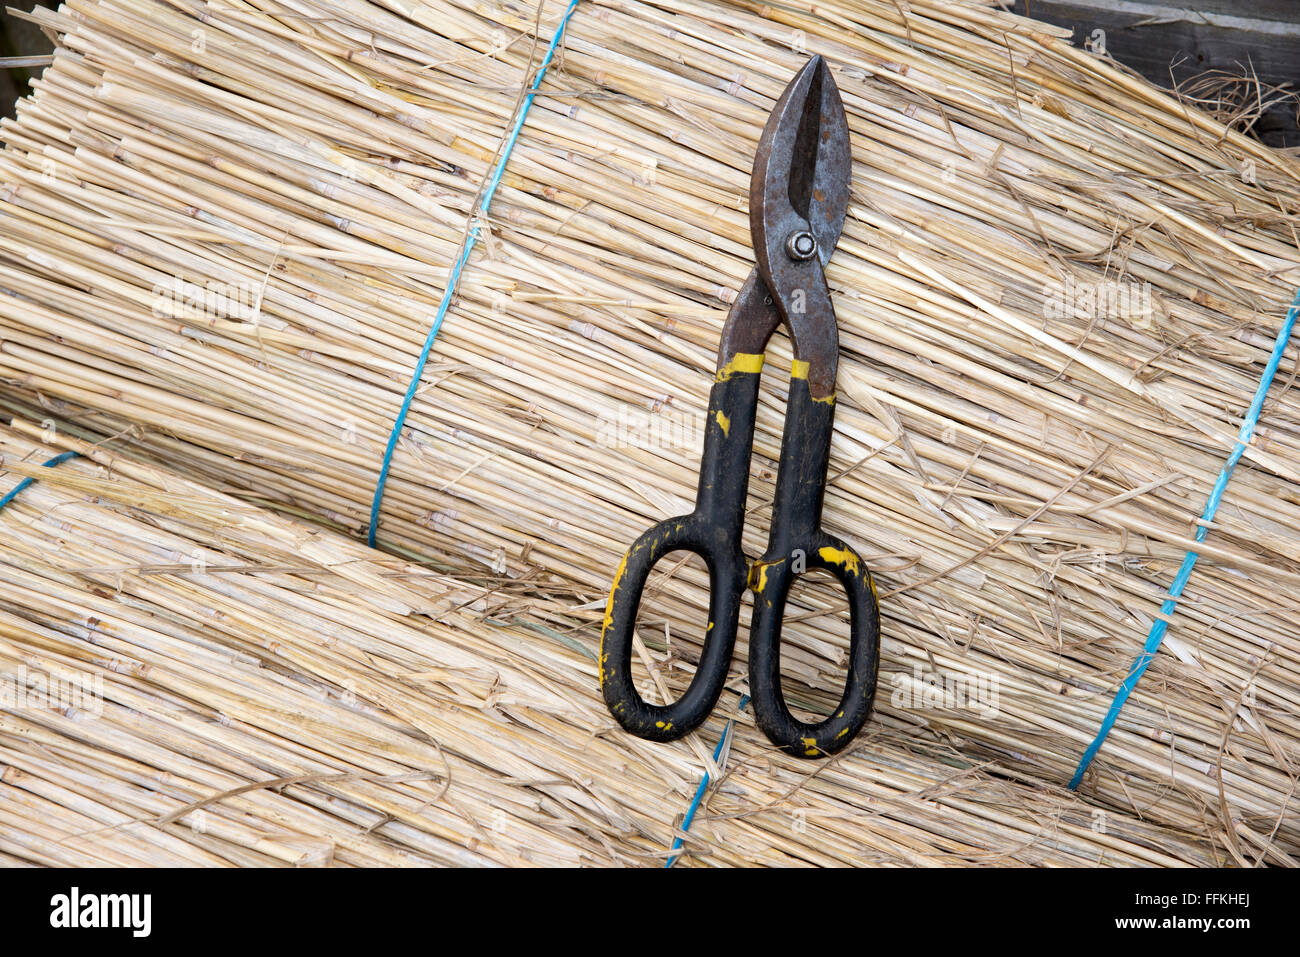 Combed wheat reed used for thatching and the thatcher's scissors - Stock Image